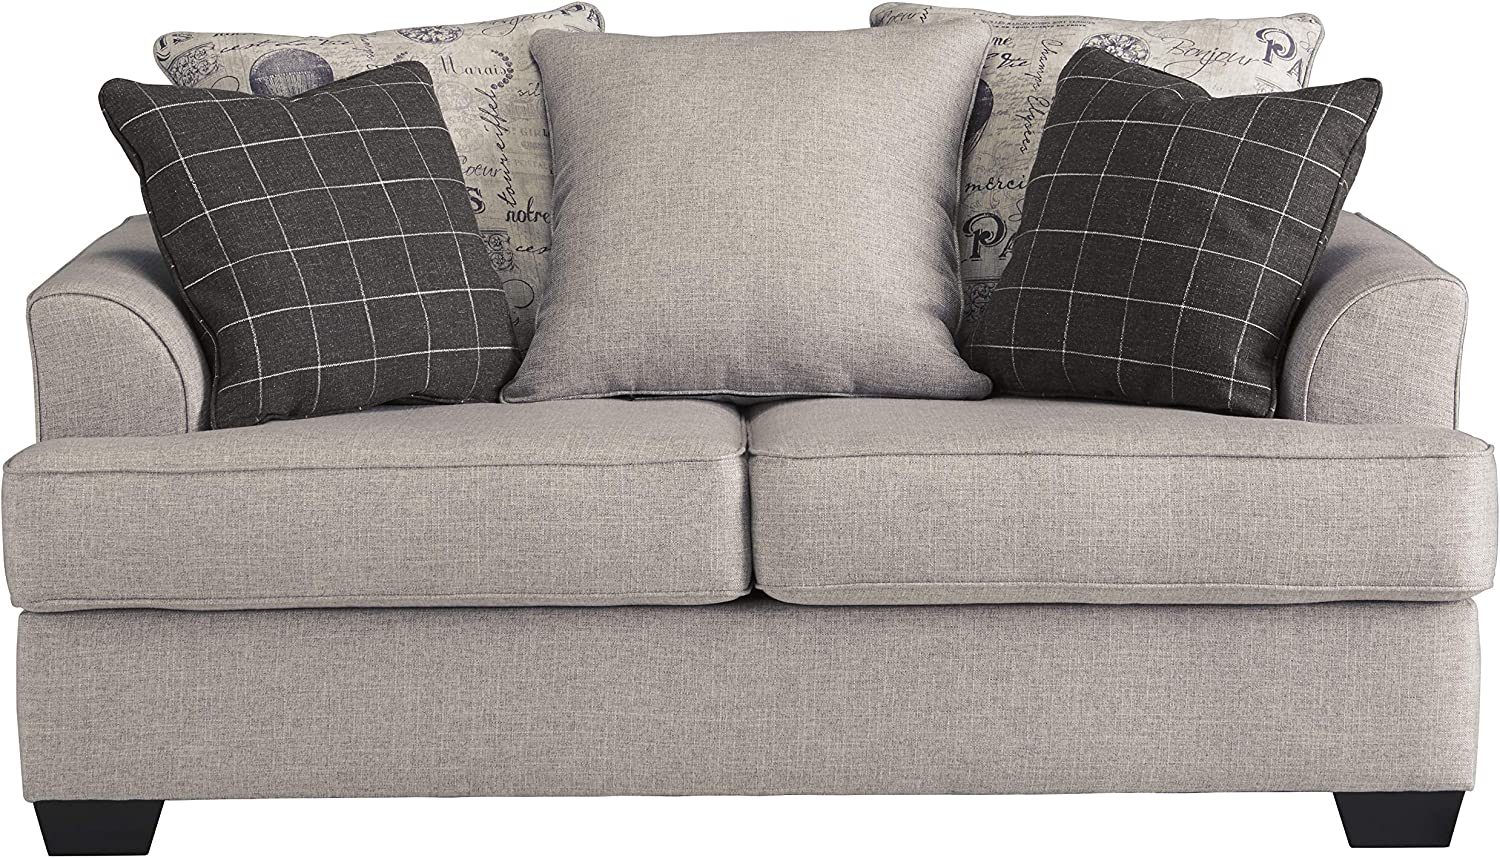 Signature Design by Ashley - Velletri Casual Loveseat w/ 2 Pillows, Beige